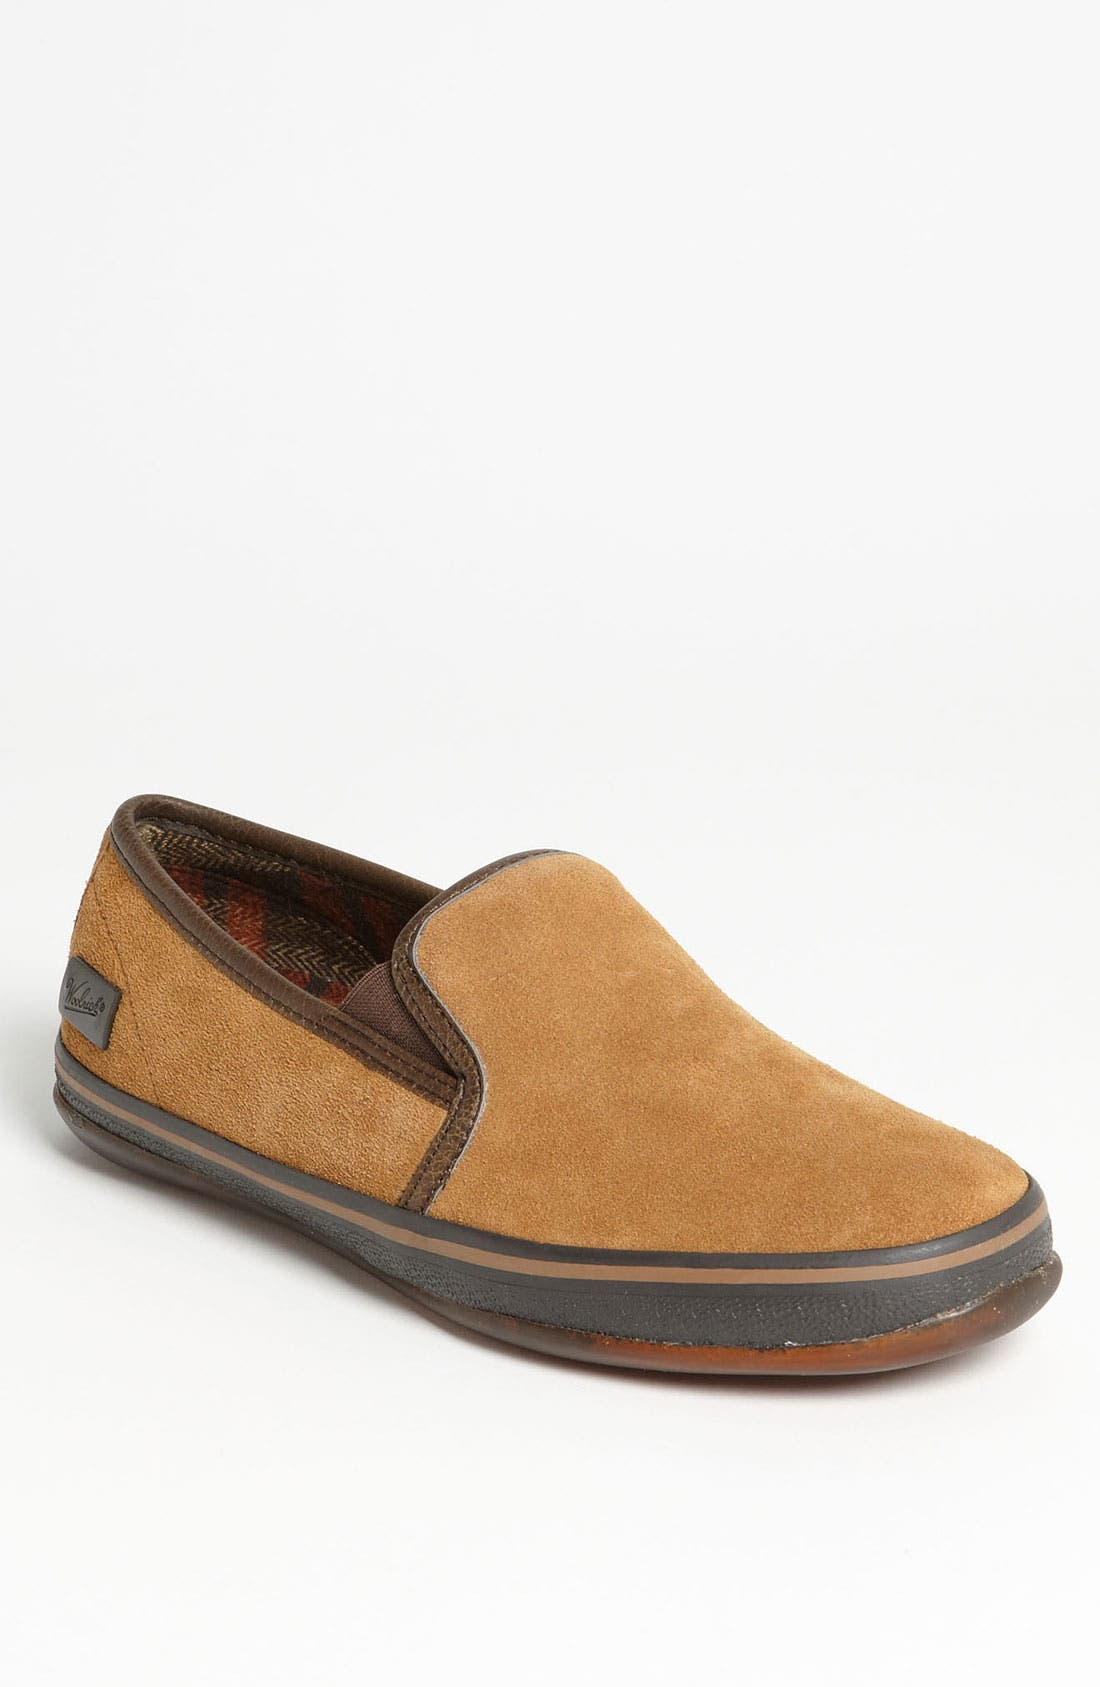 Main Image - Woolrich 'Tanglewood' Slipper (Online Only)